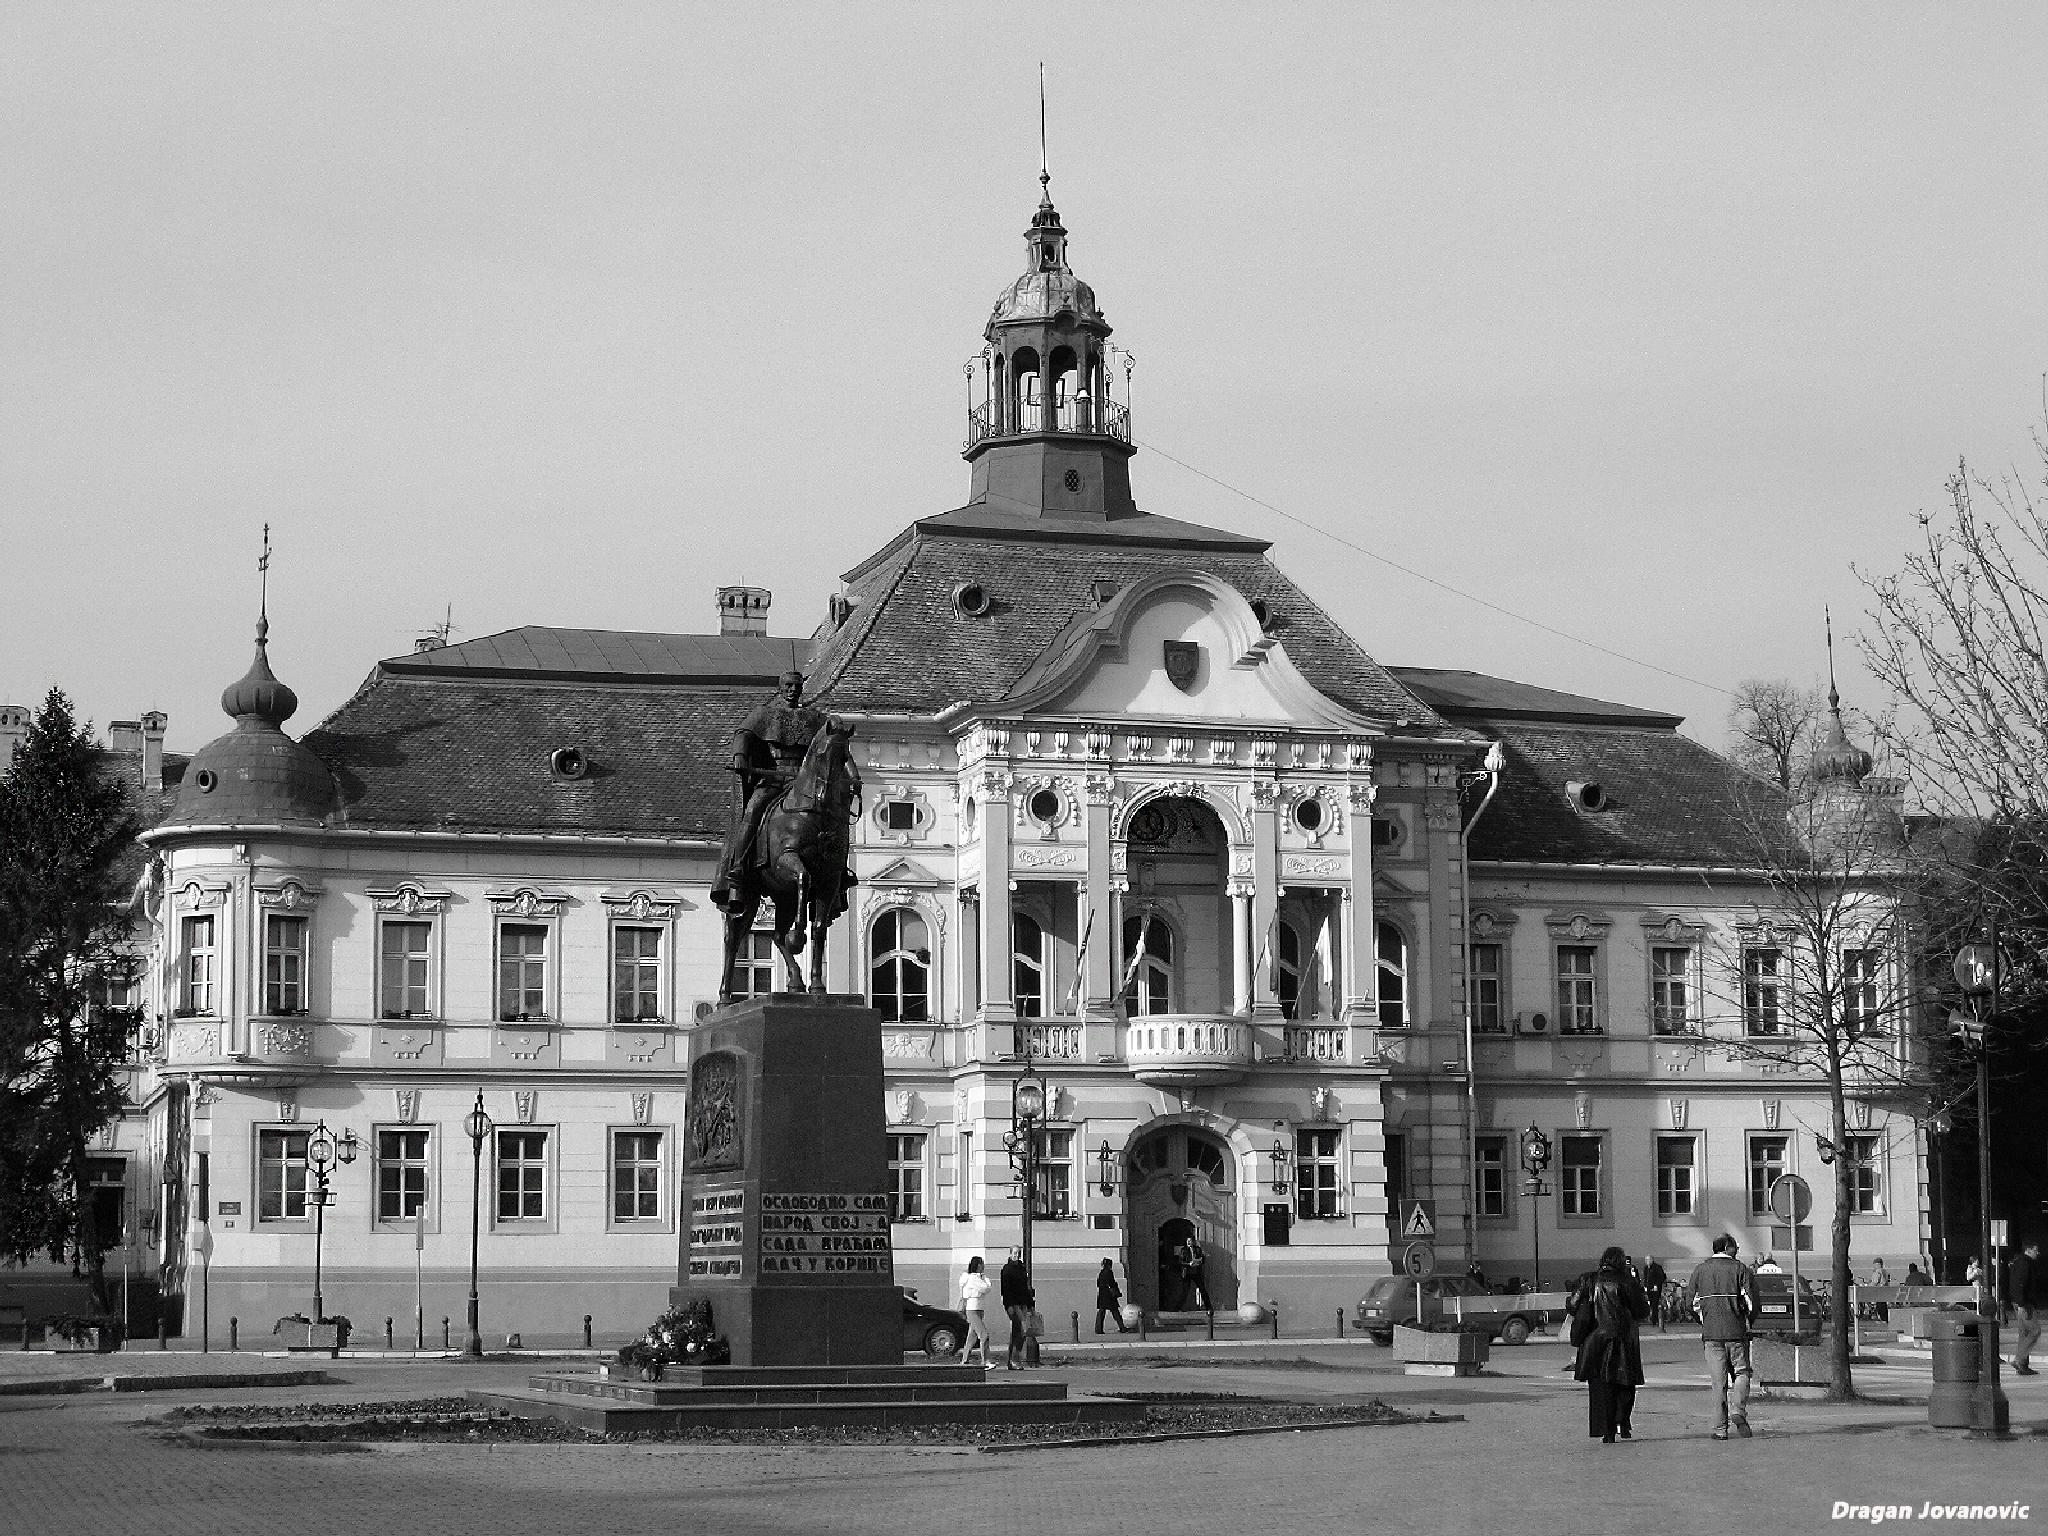 Monument of Serbian king Peter II and City house by espanol1950